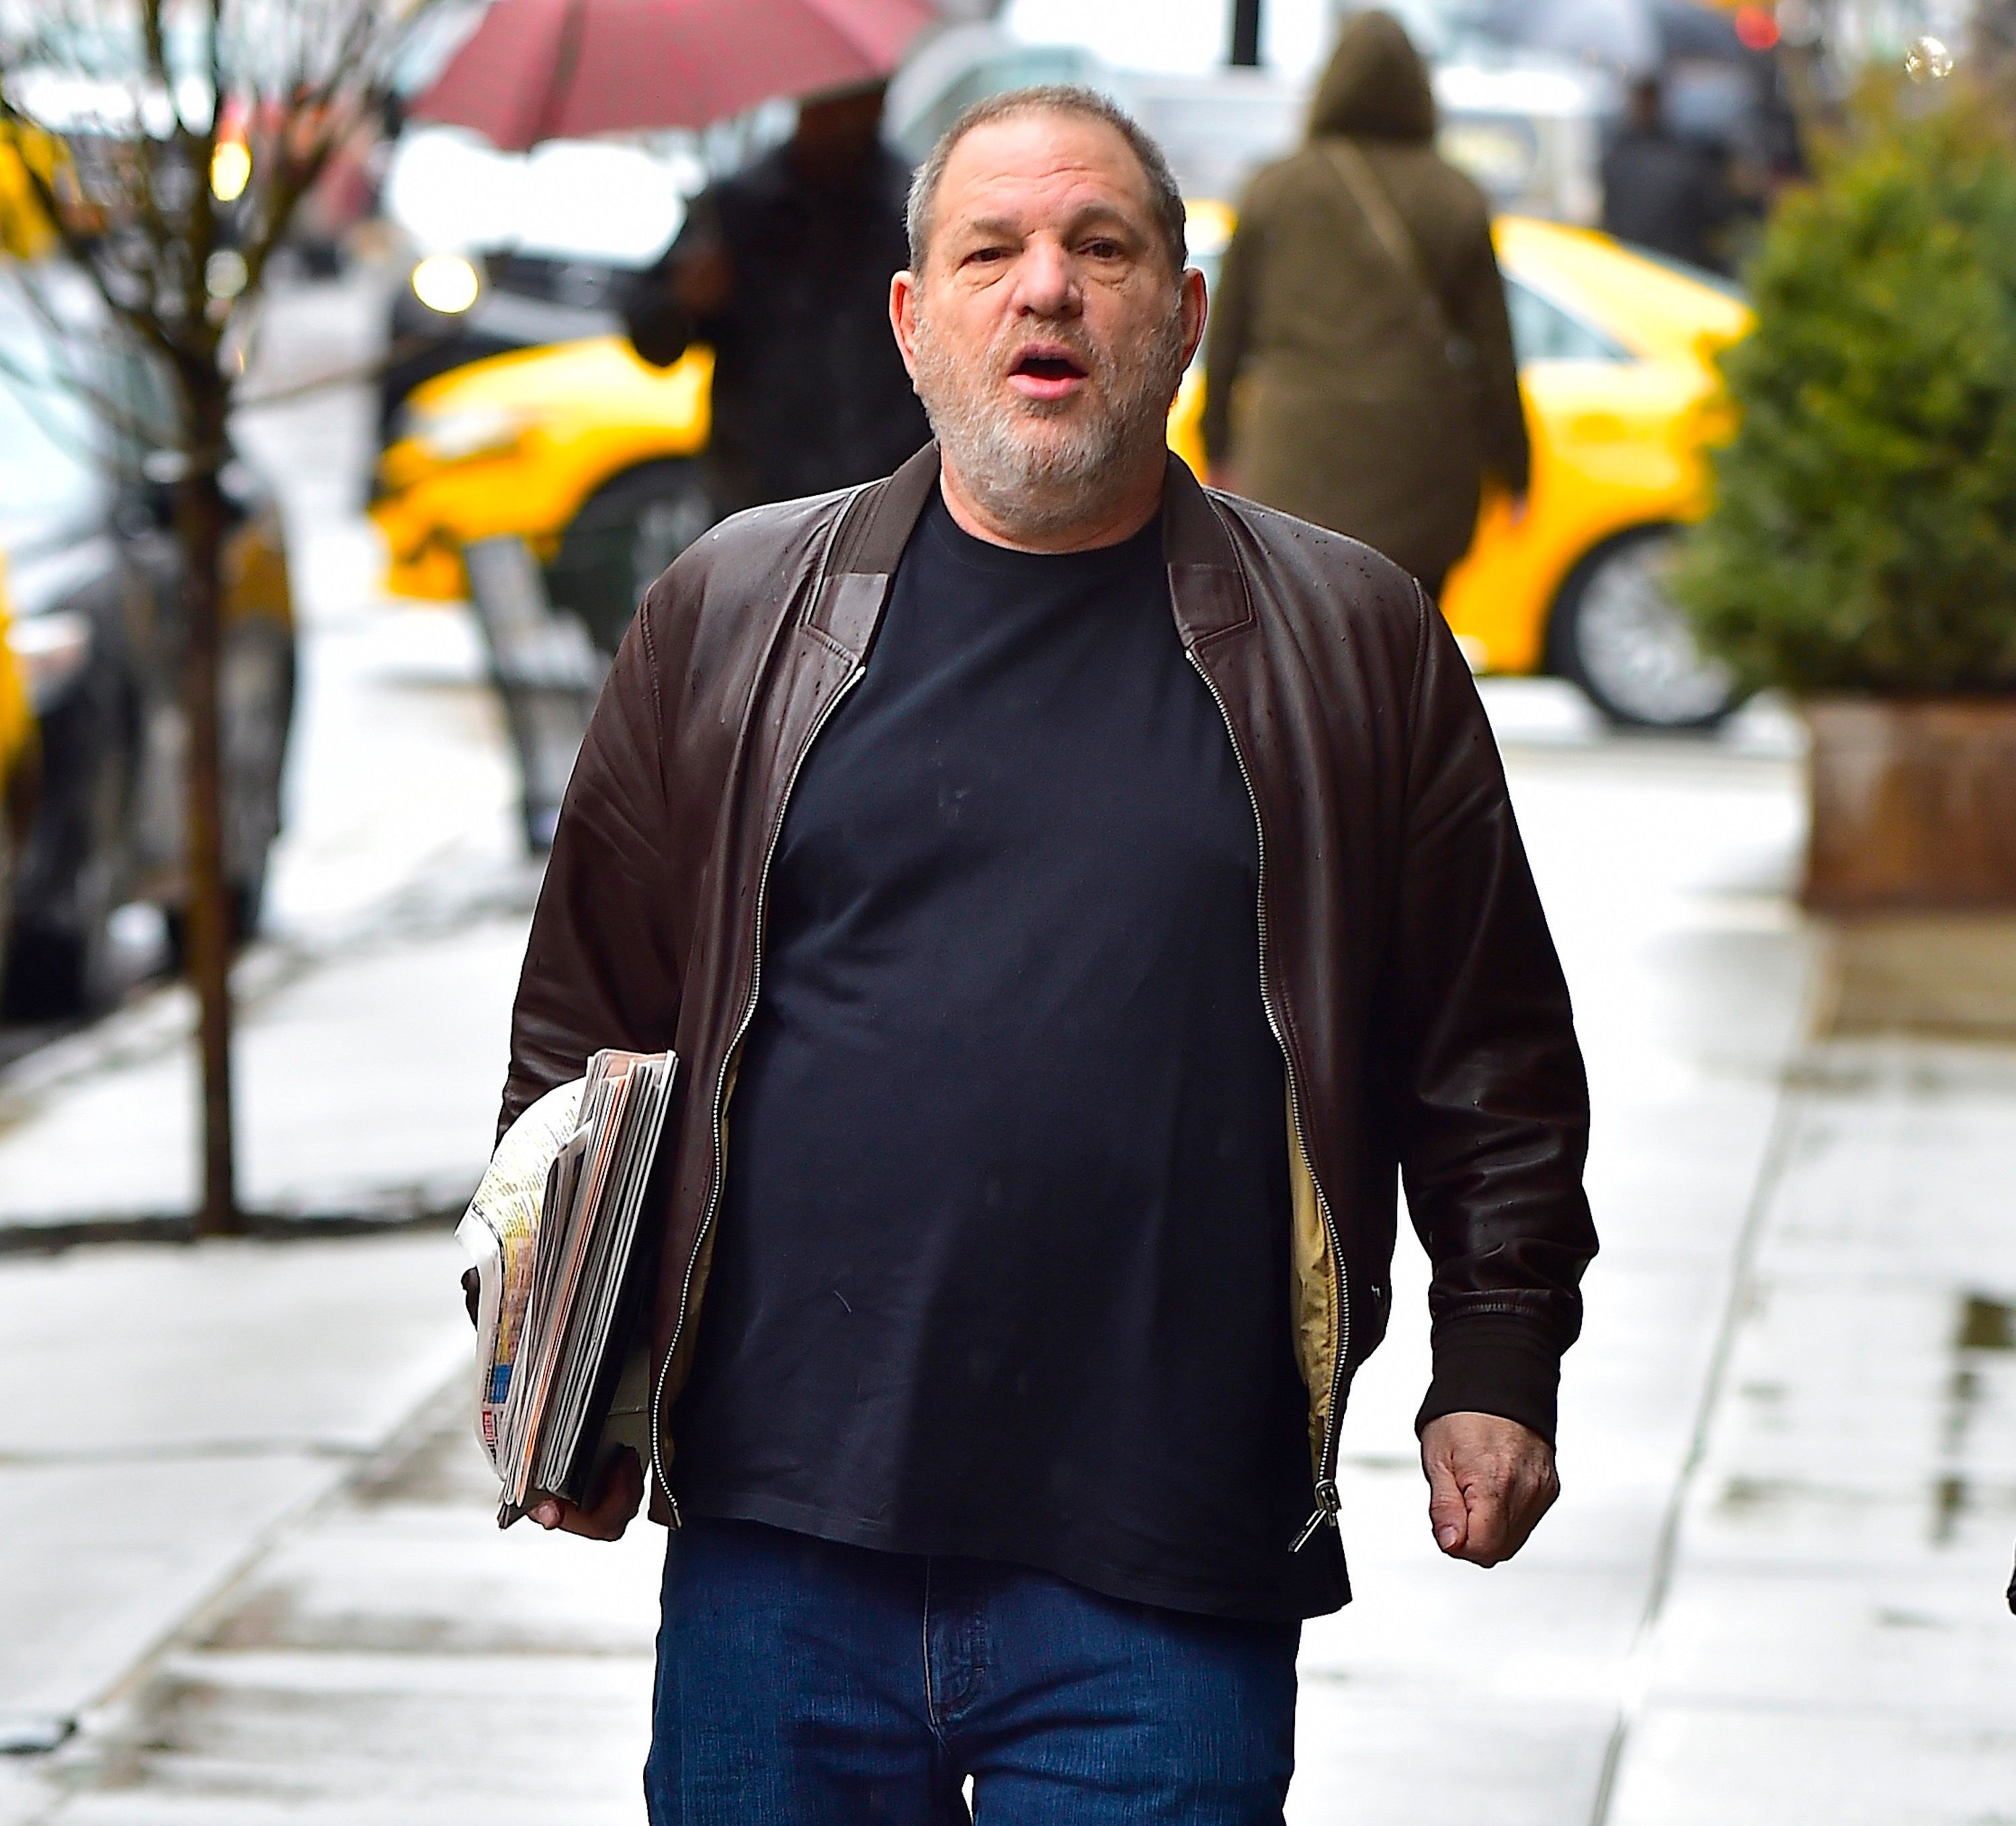 NEW YORK, NY - MARCH 07:  Harvey Weinstein is seen in Tribeca  on March 7, 2017 in New York City.  (Photo by Alo Ceballos/GC Images)